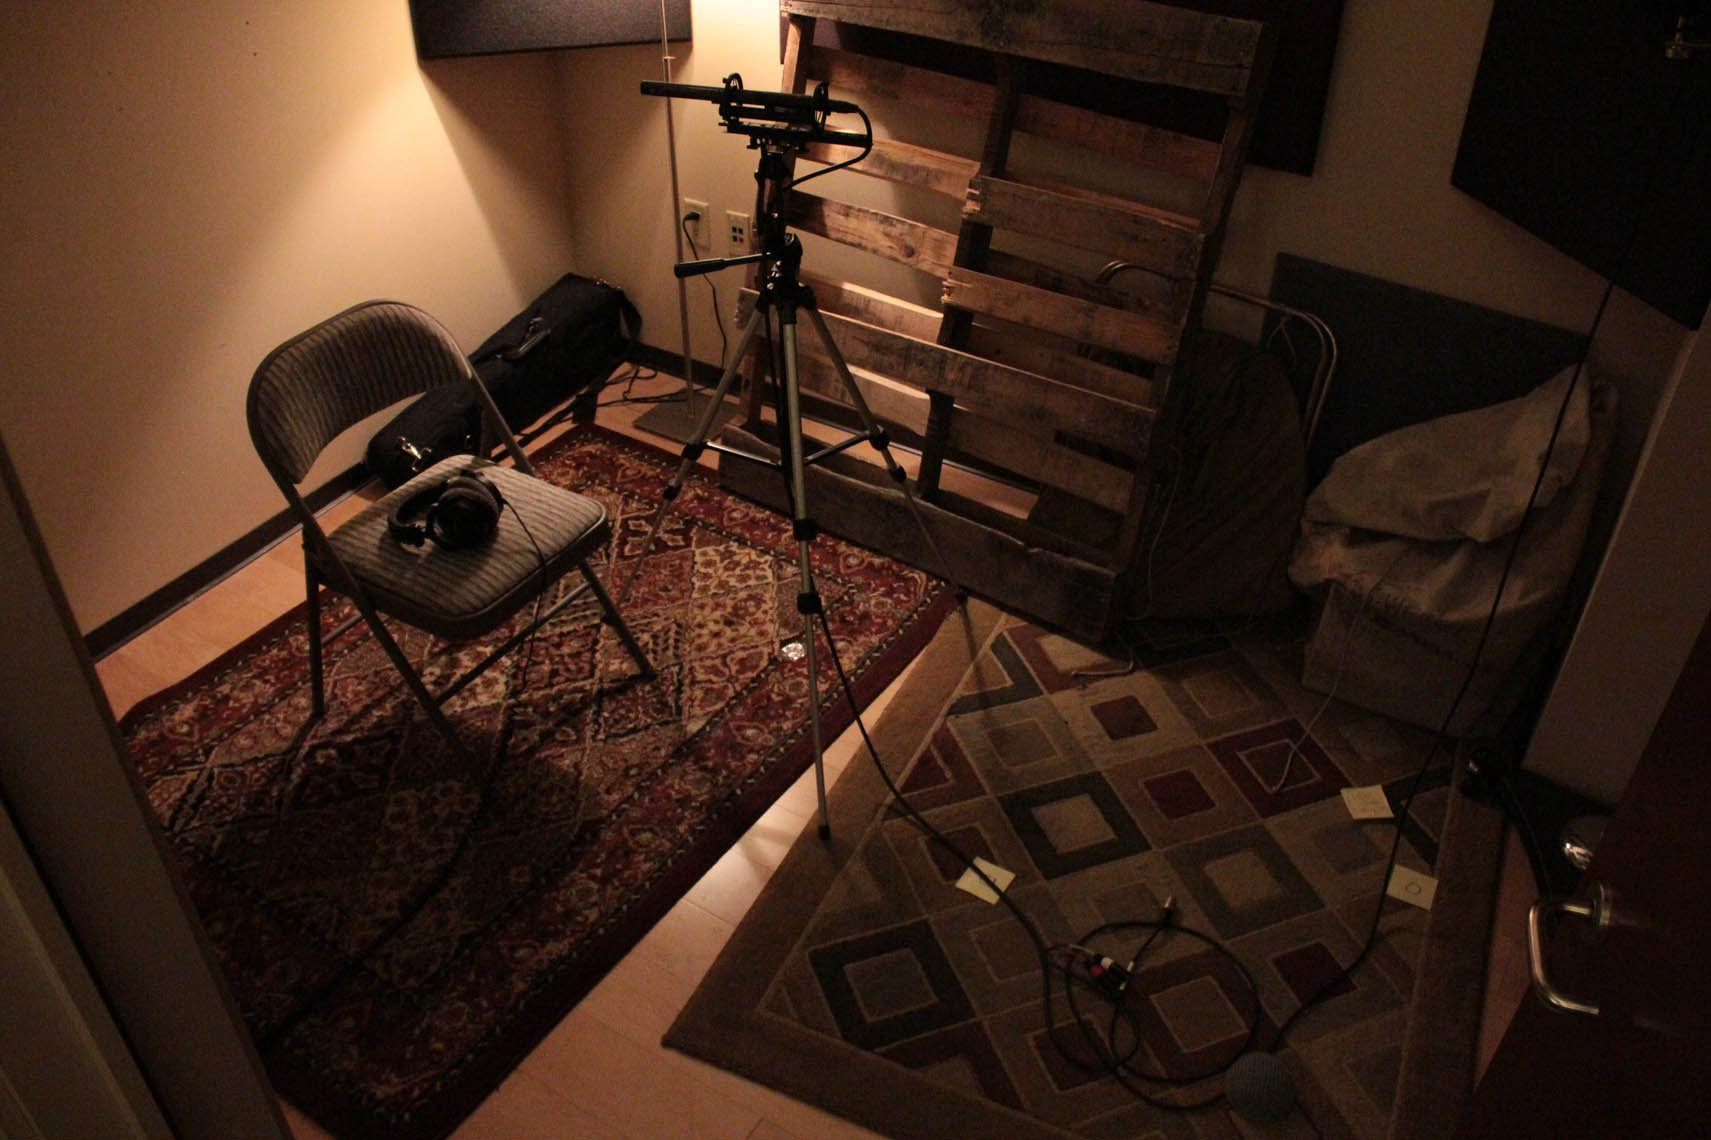 Justin Bell's audio booth at Obsidian, circa development of Pillars of Eternity. (Photo credit: Obsidian Entertainment.)